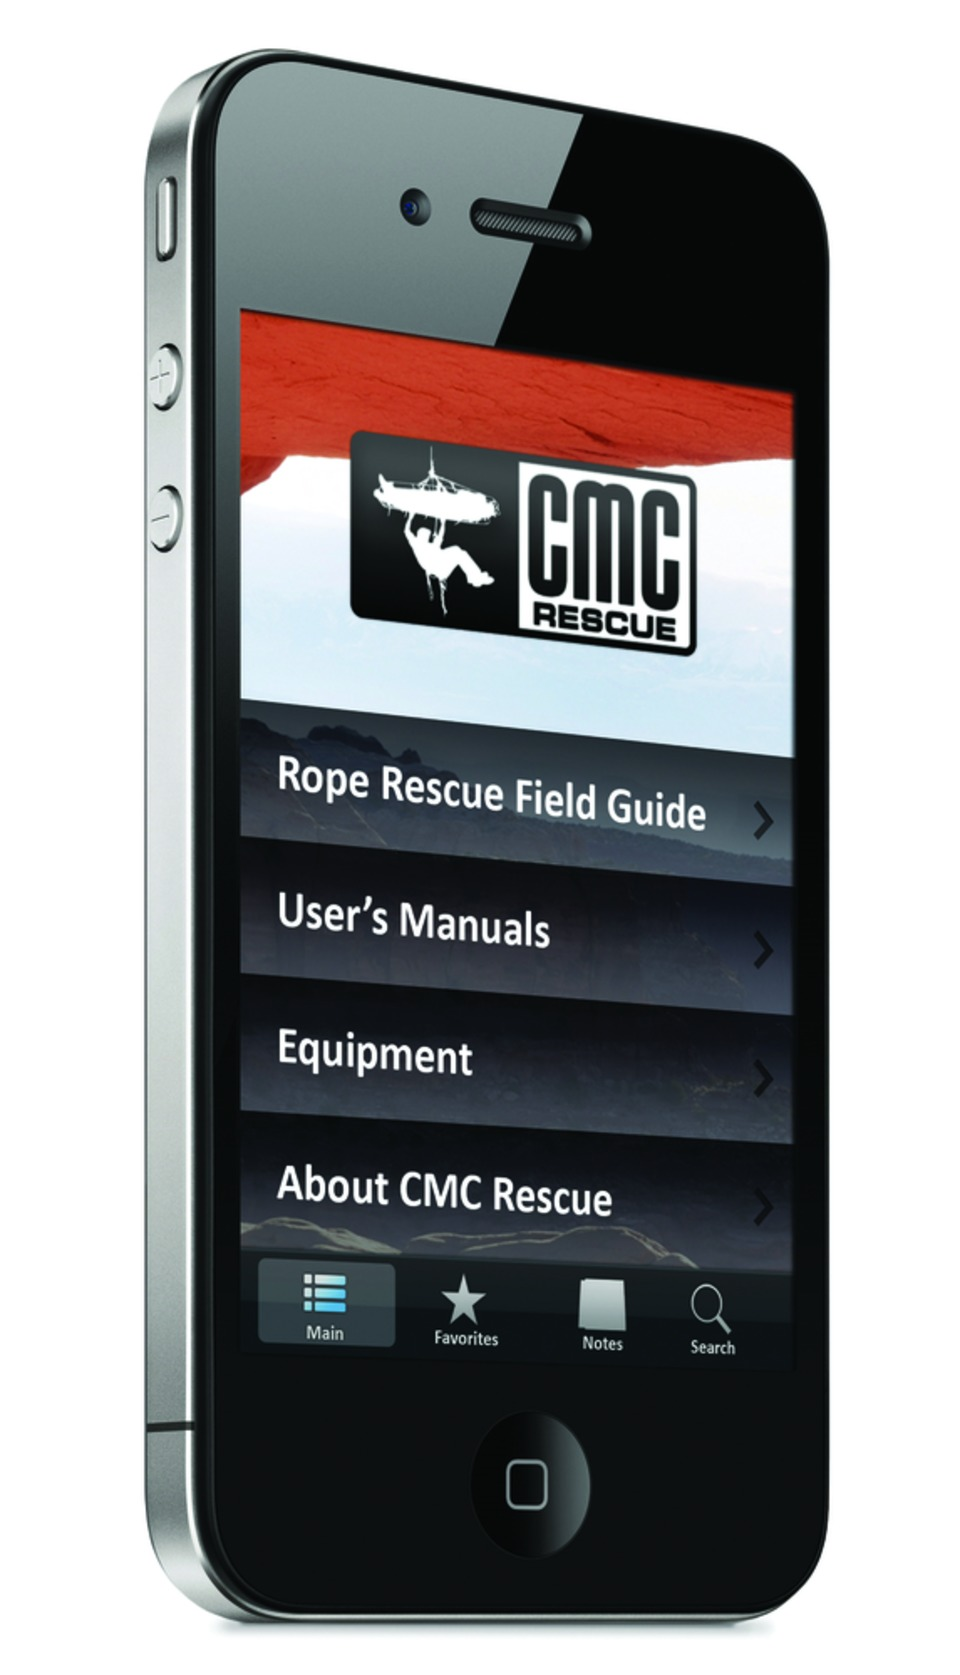 cmc rescue inc rope rescue field guide app in training software rh officer com CMC Rope Rescue Field Guide Rope Rescue Figure 8